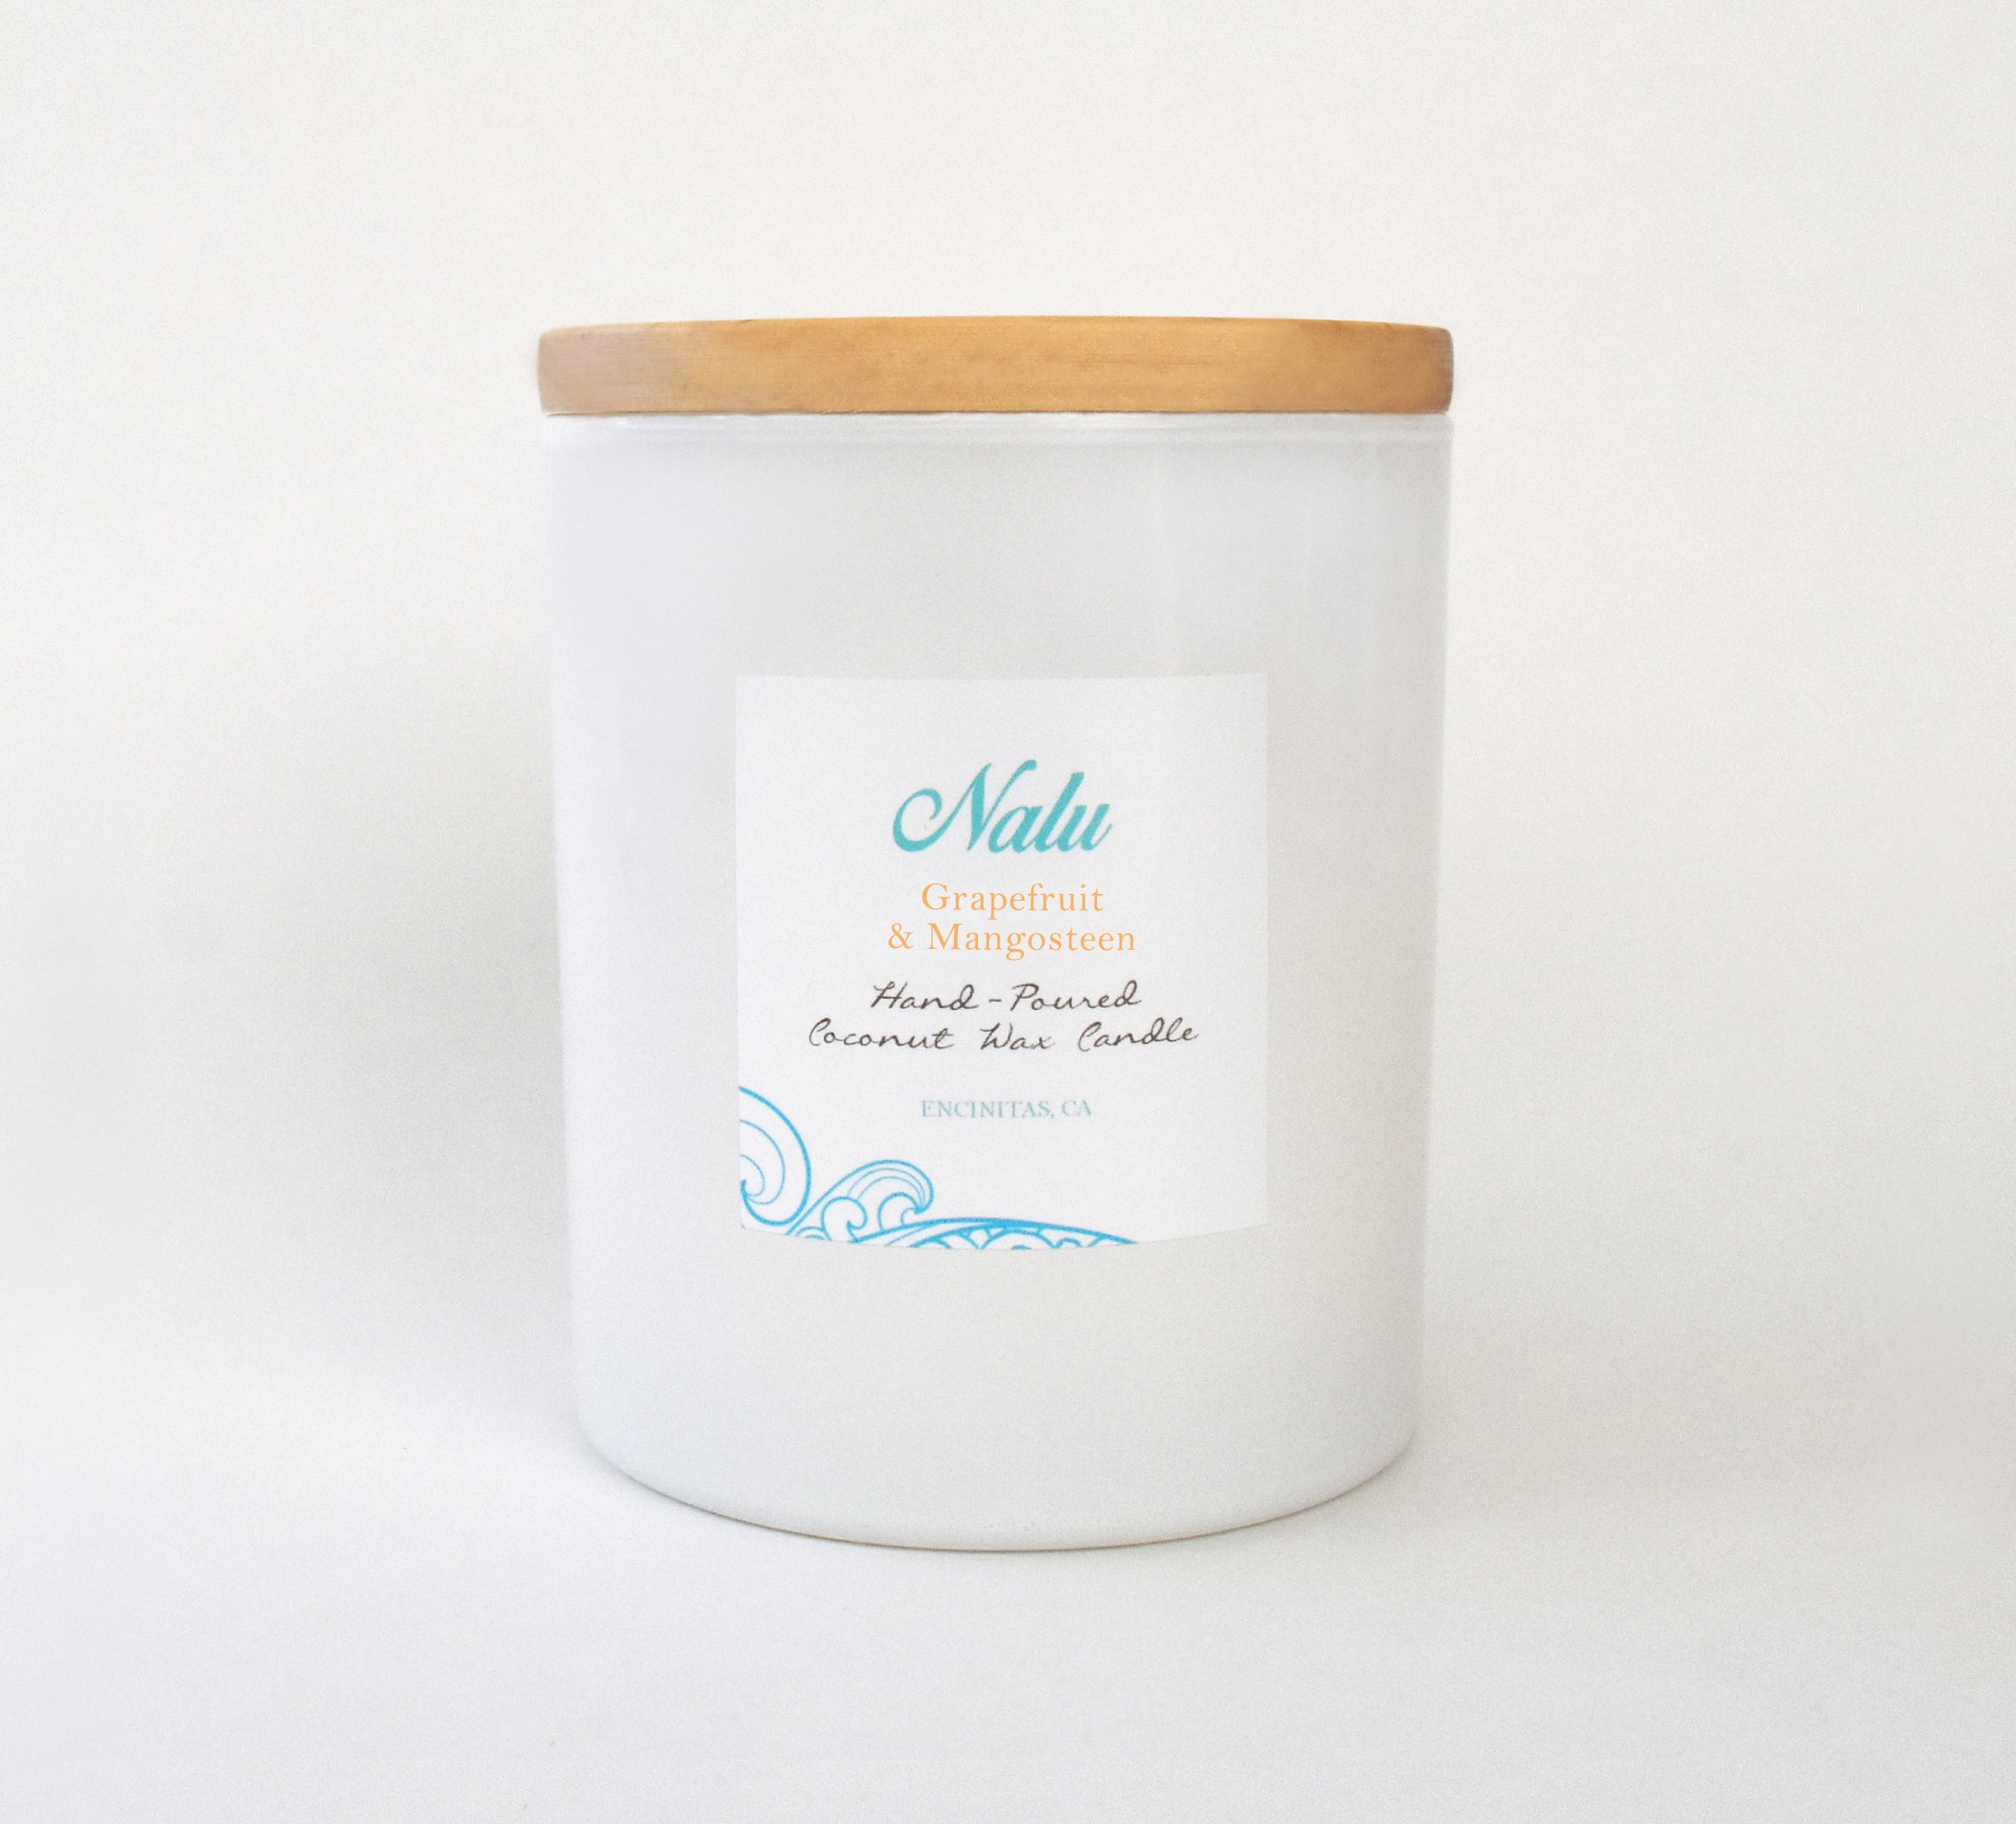 Grapefruit and Mangosteen 10 oz. Candle